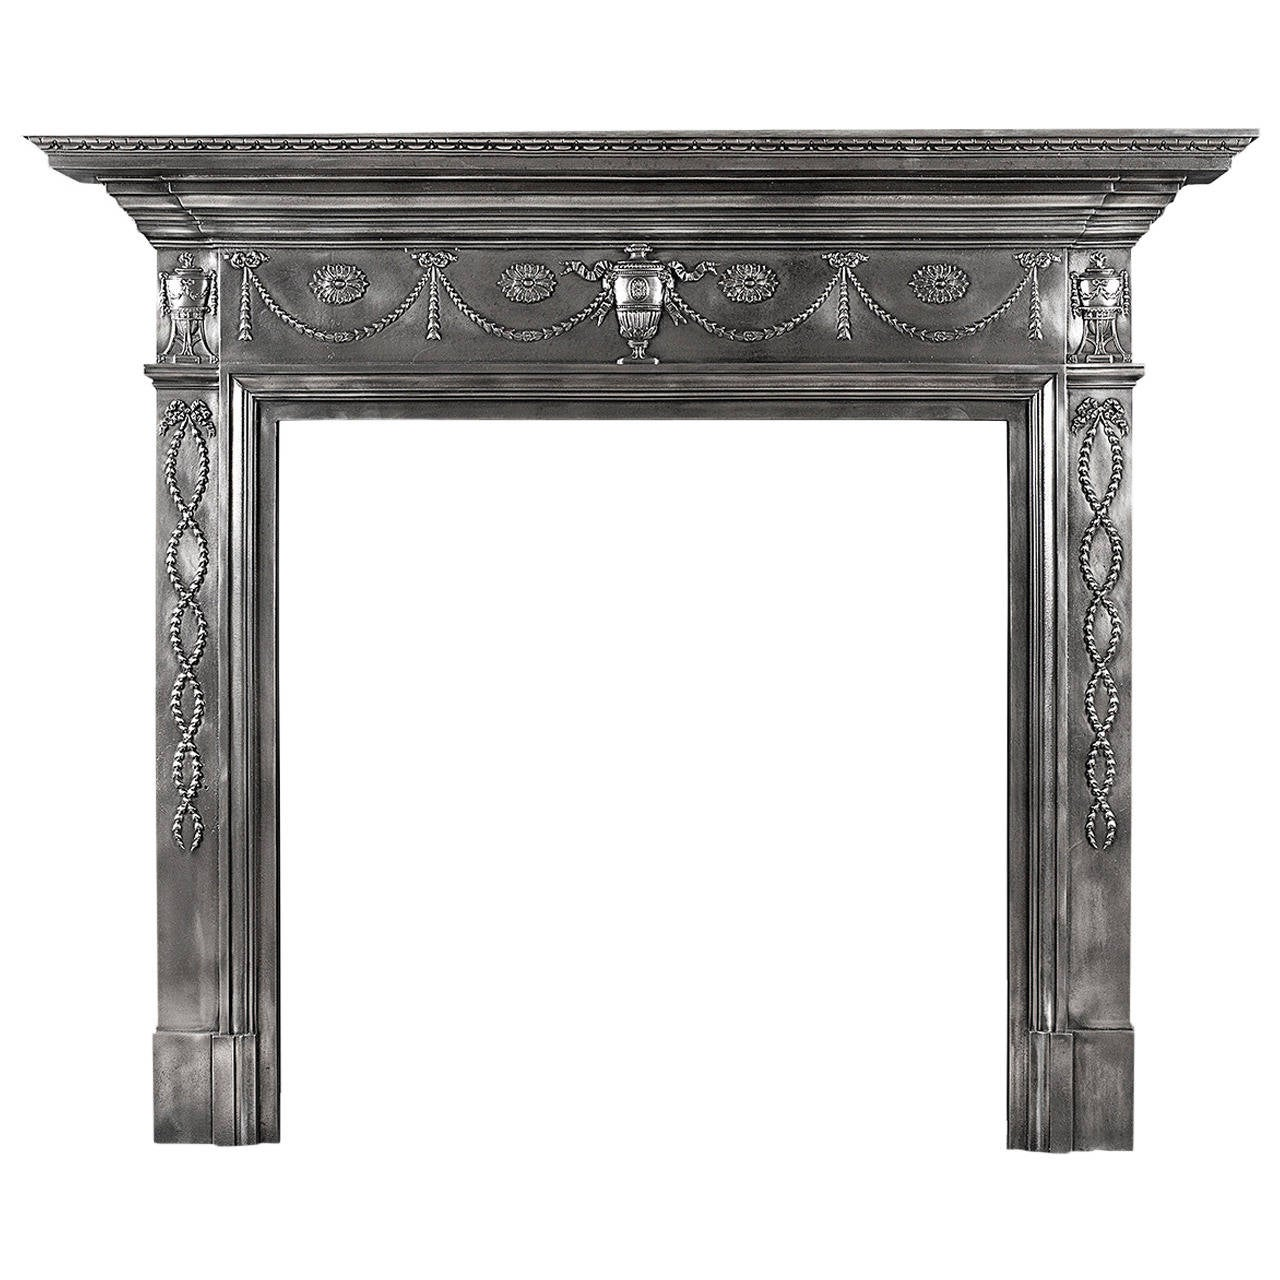 Shop Adam Style fireplaces and mantels at 1stdibs